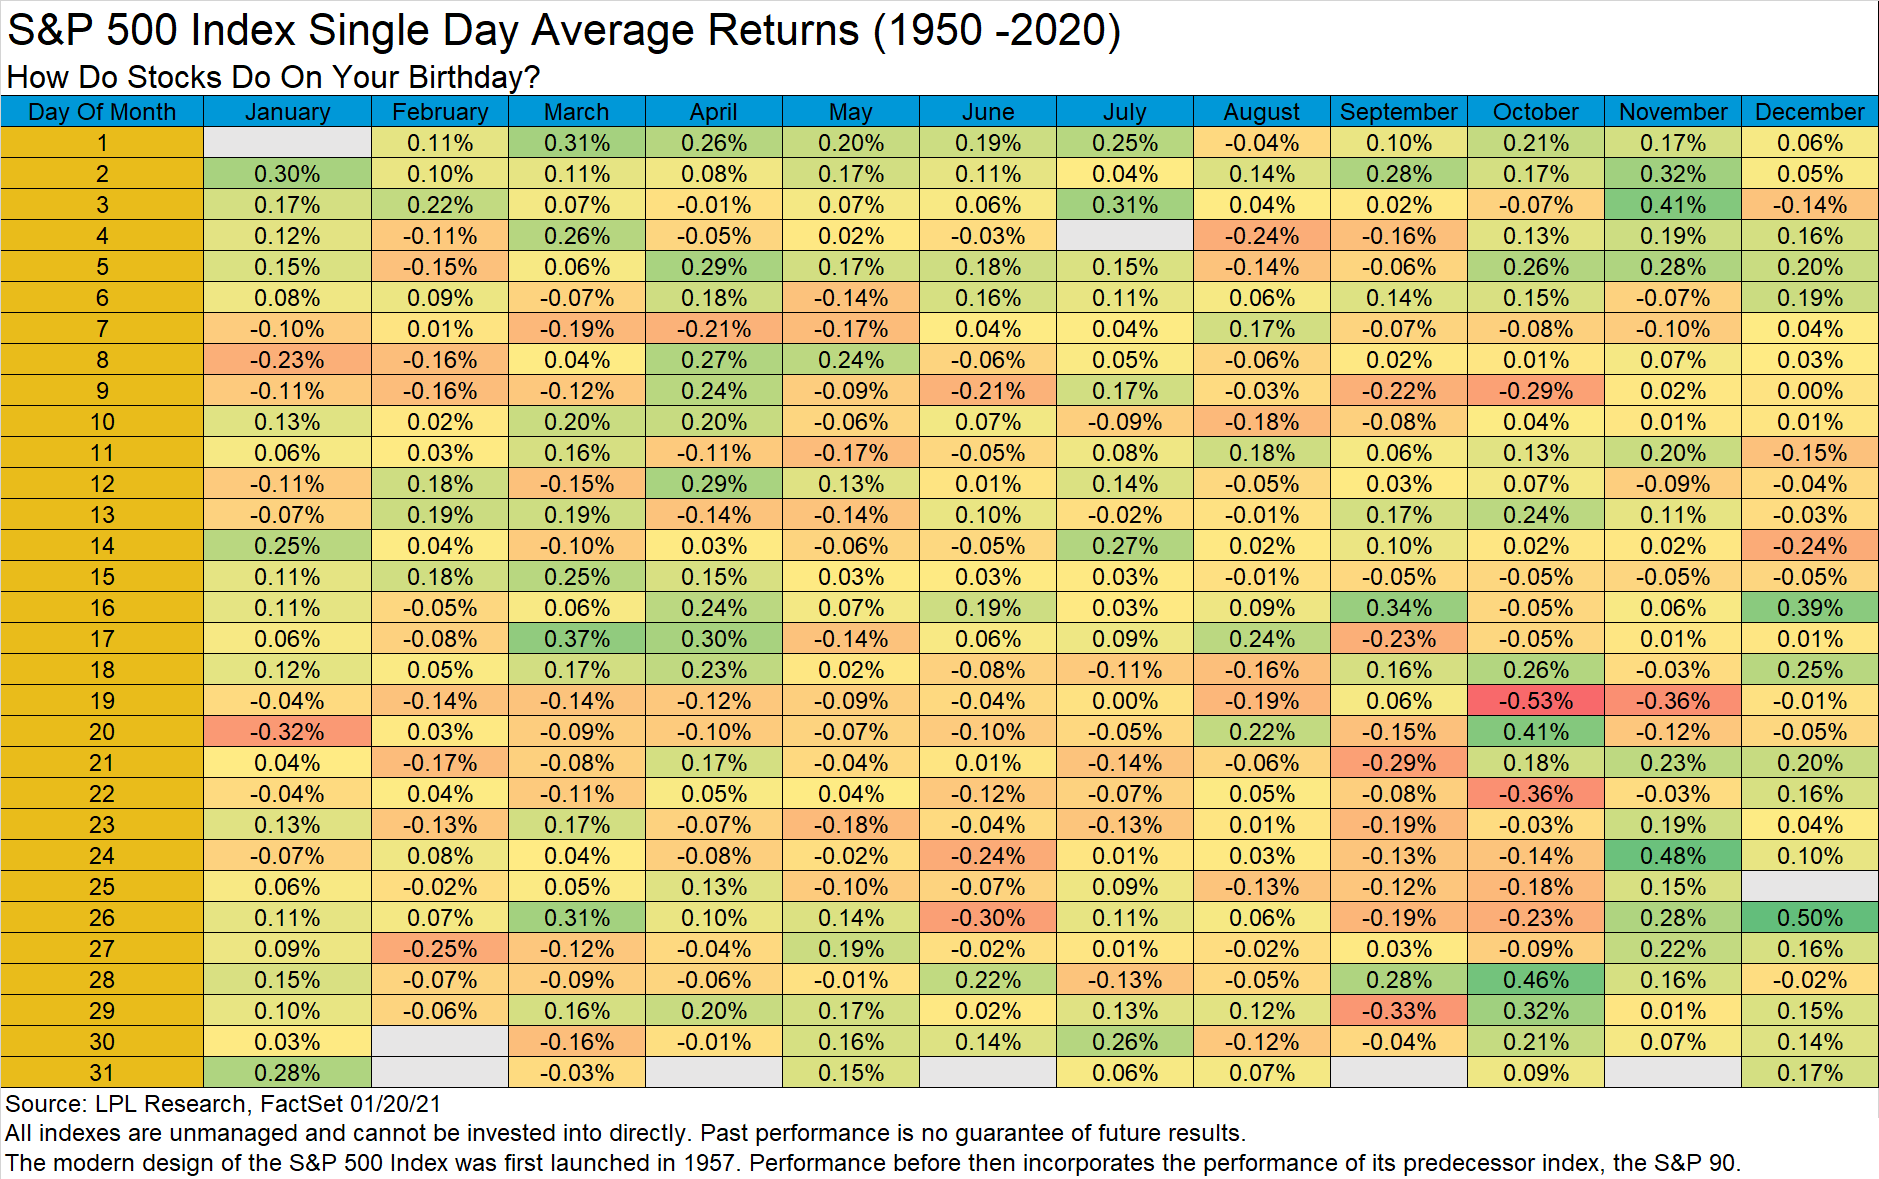 How do stocks generally perform on your birthday?